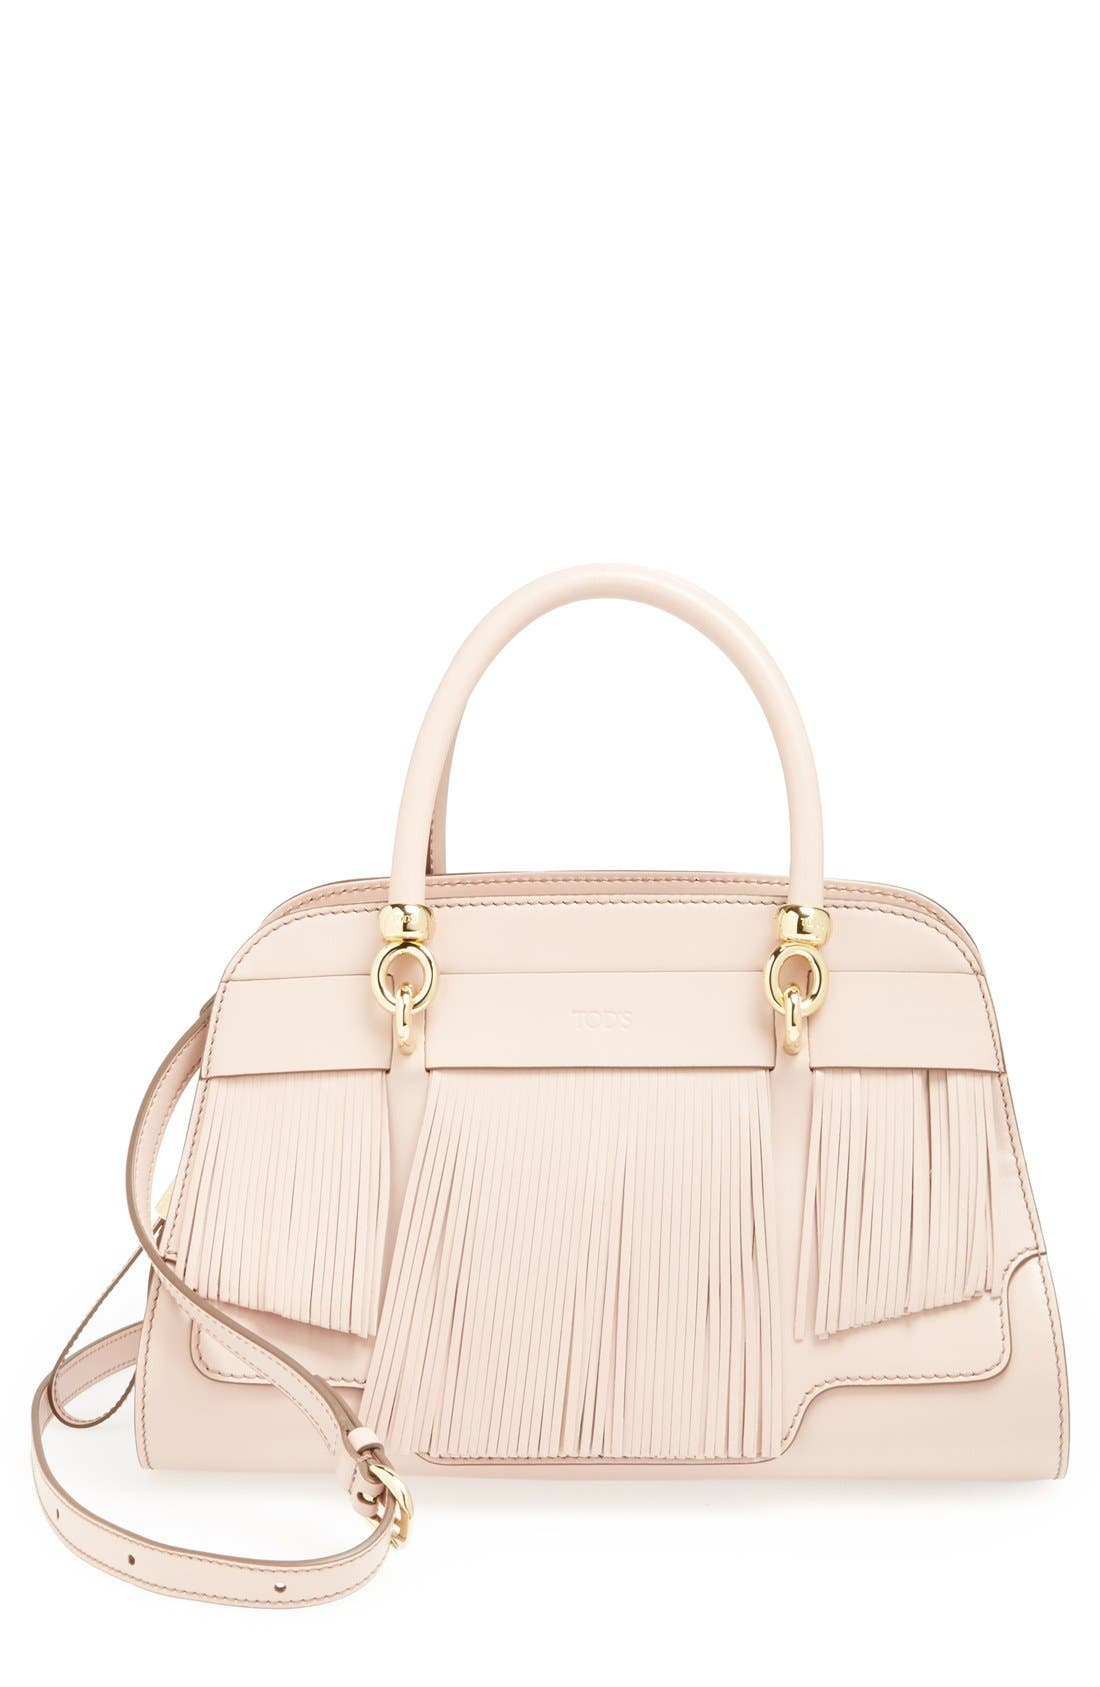 Main Image - Tod's 'Sella' Fringe Leather Satchel